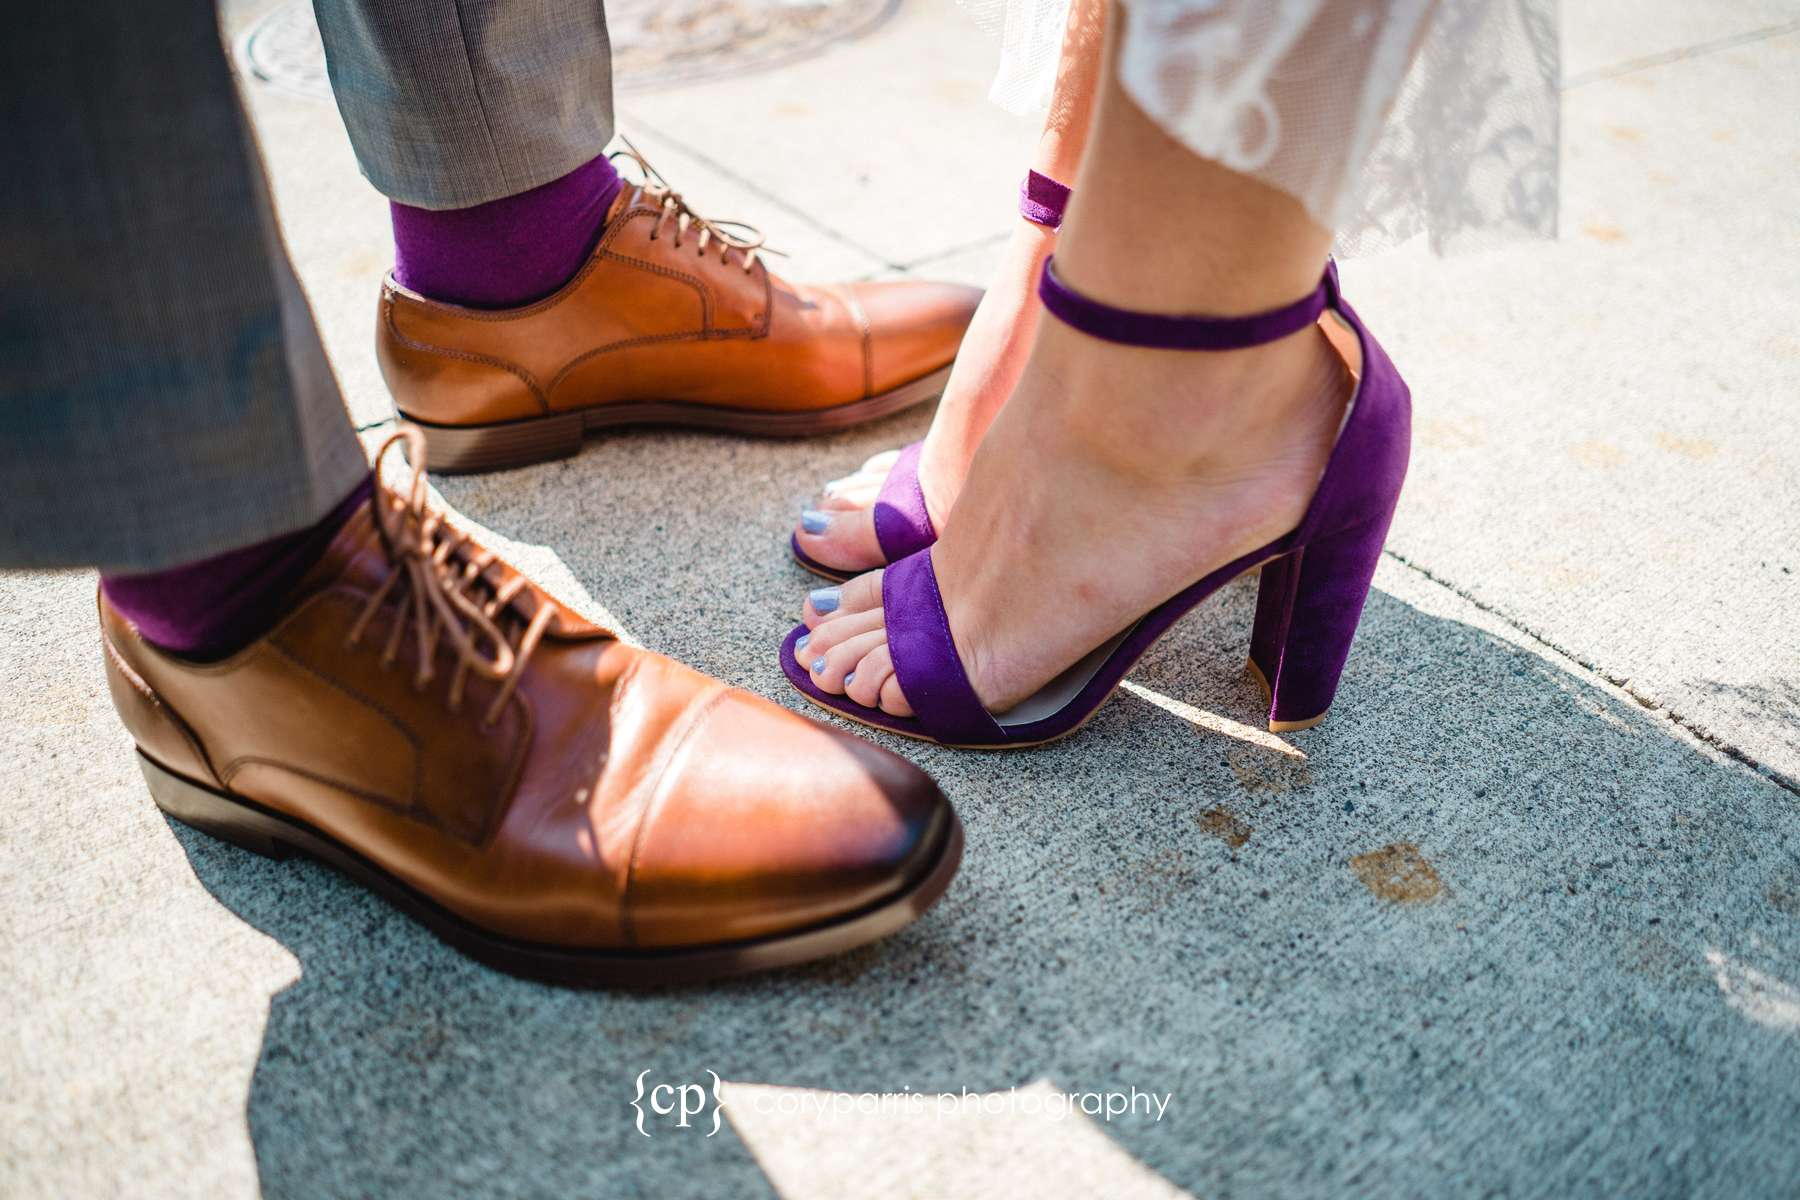 019-Seattle-Elopement-Courthouse.jpg